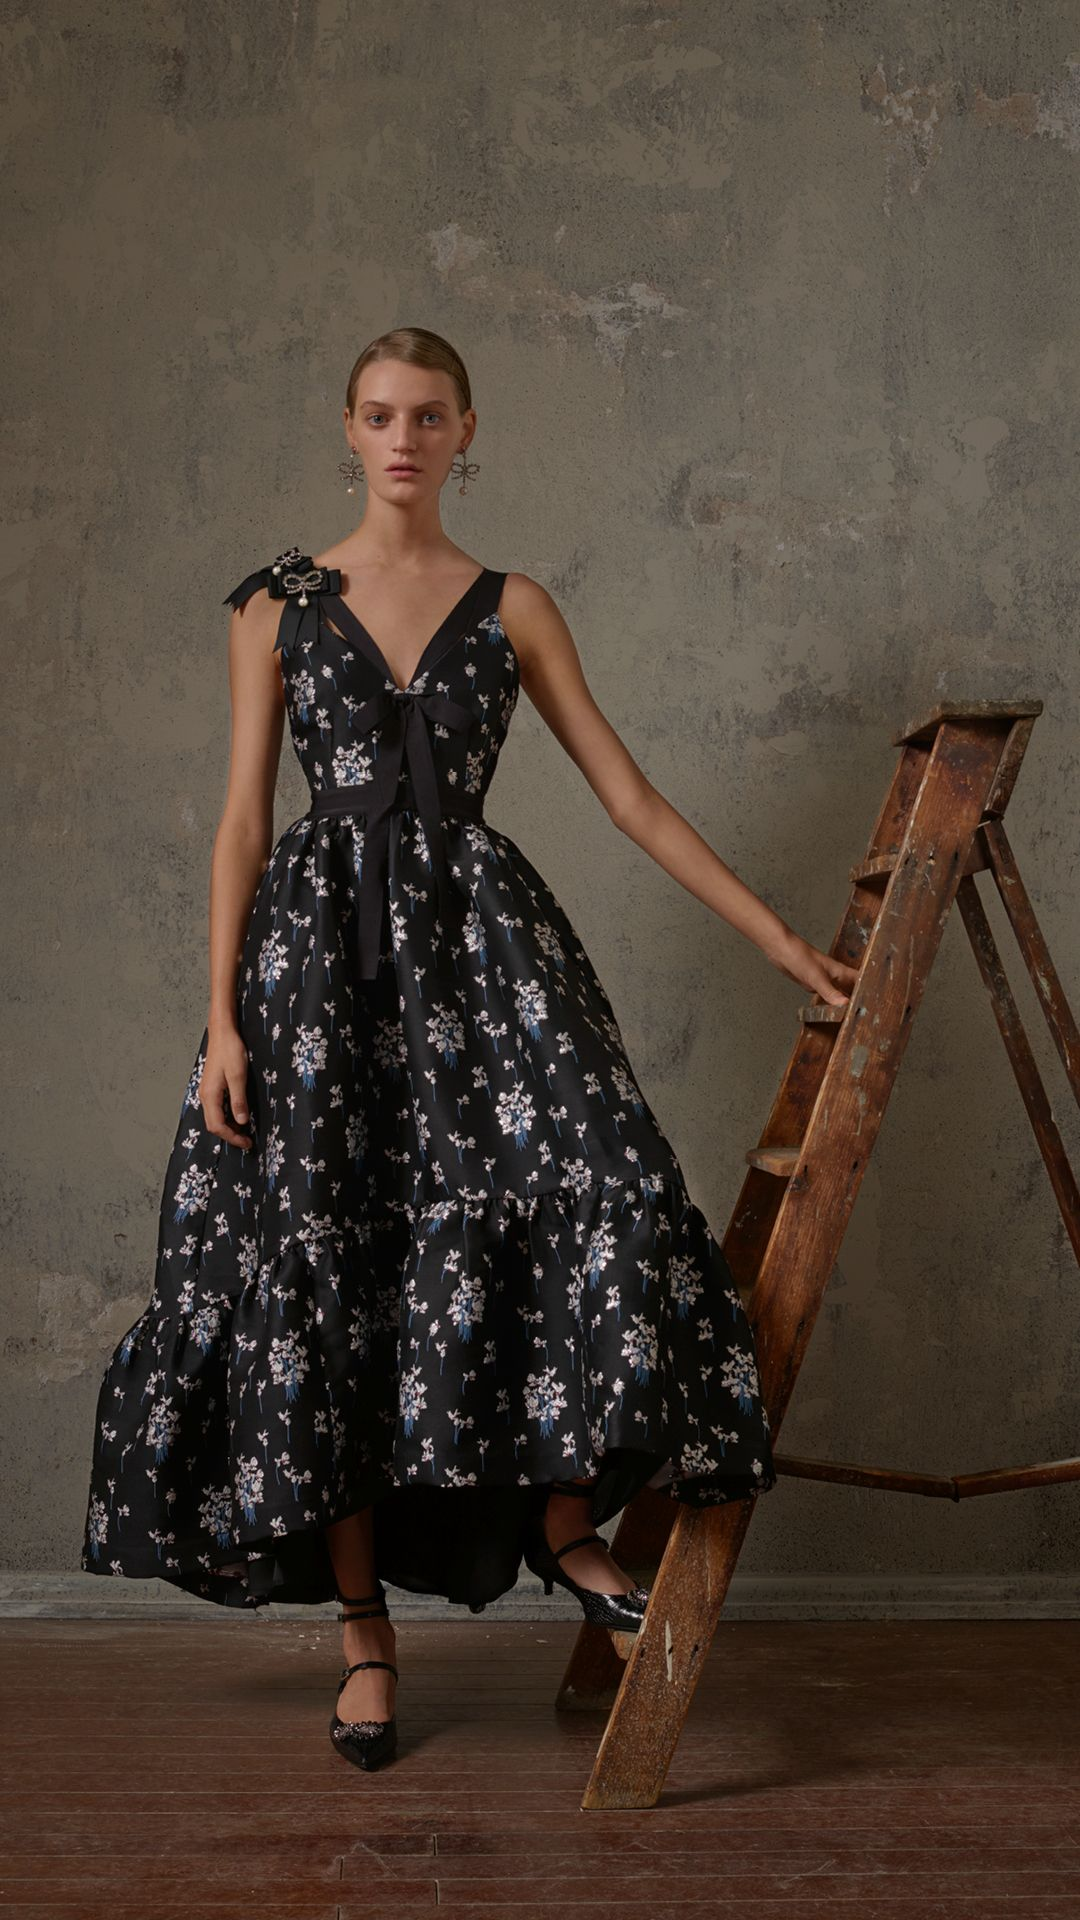 75b73e894fc16 Deeply coloured prints, decadent lace and sweeping dresses, discover ERDEM's  signature aesthetics in the ERDEMxHM collection. Launching in selected  stores ...